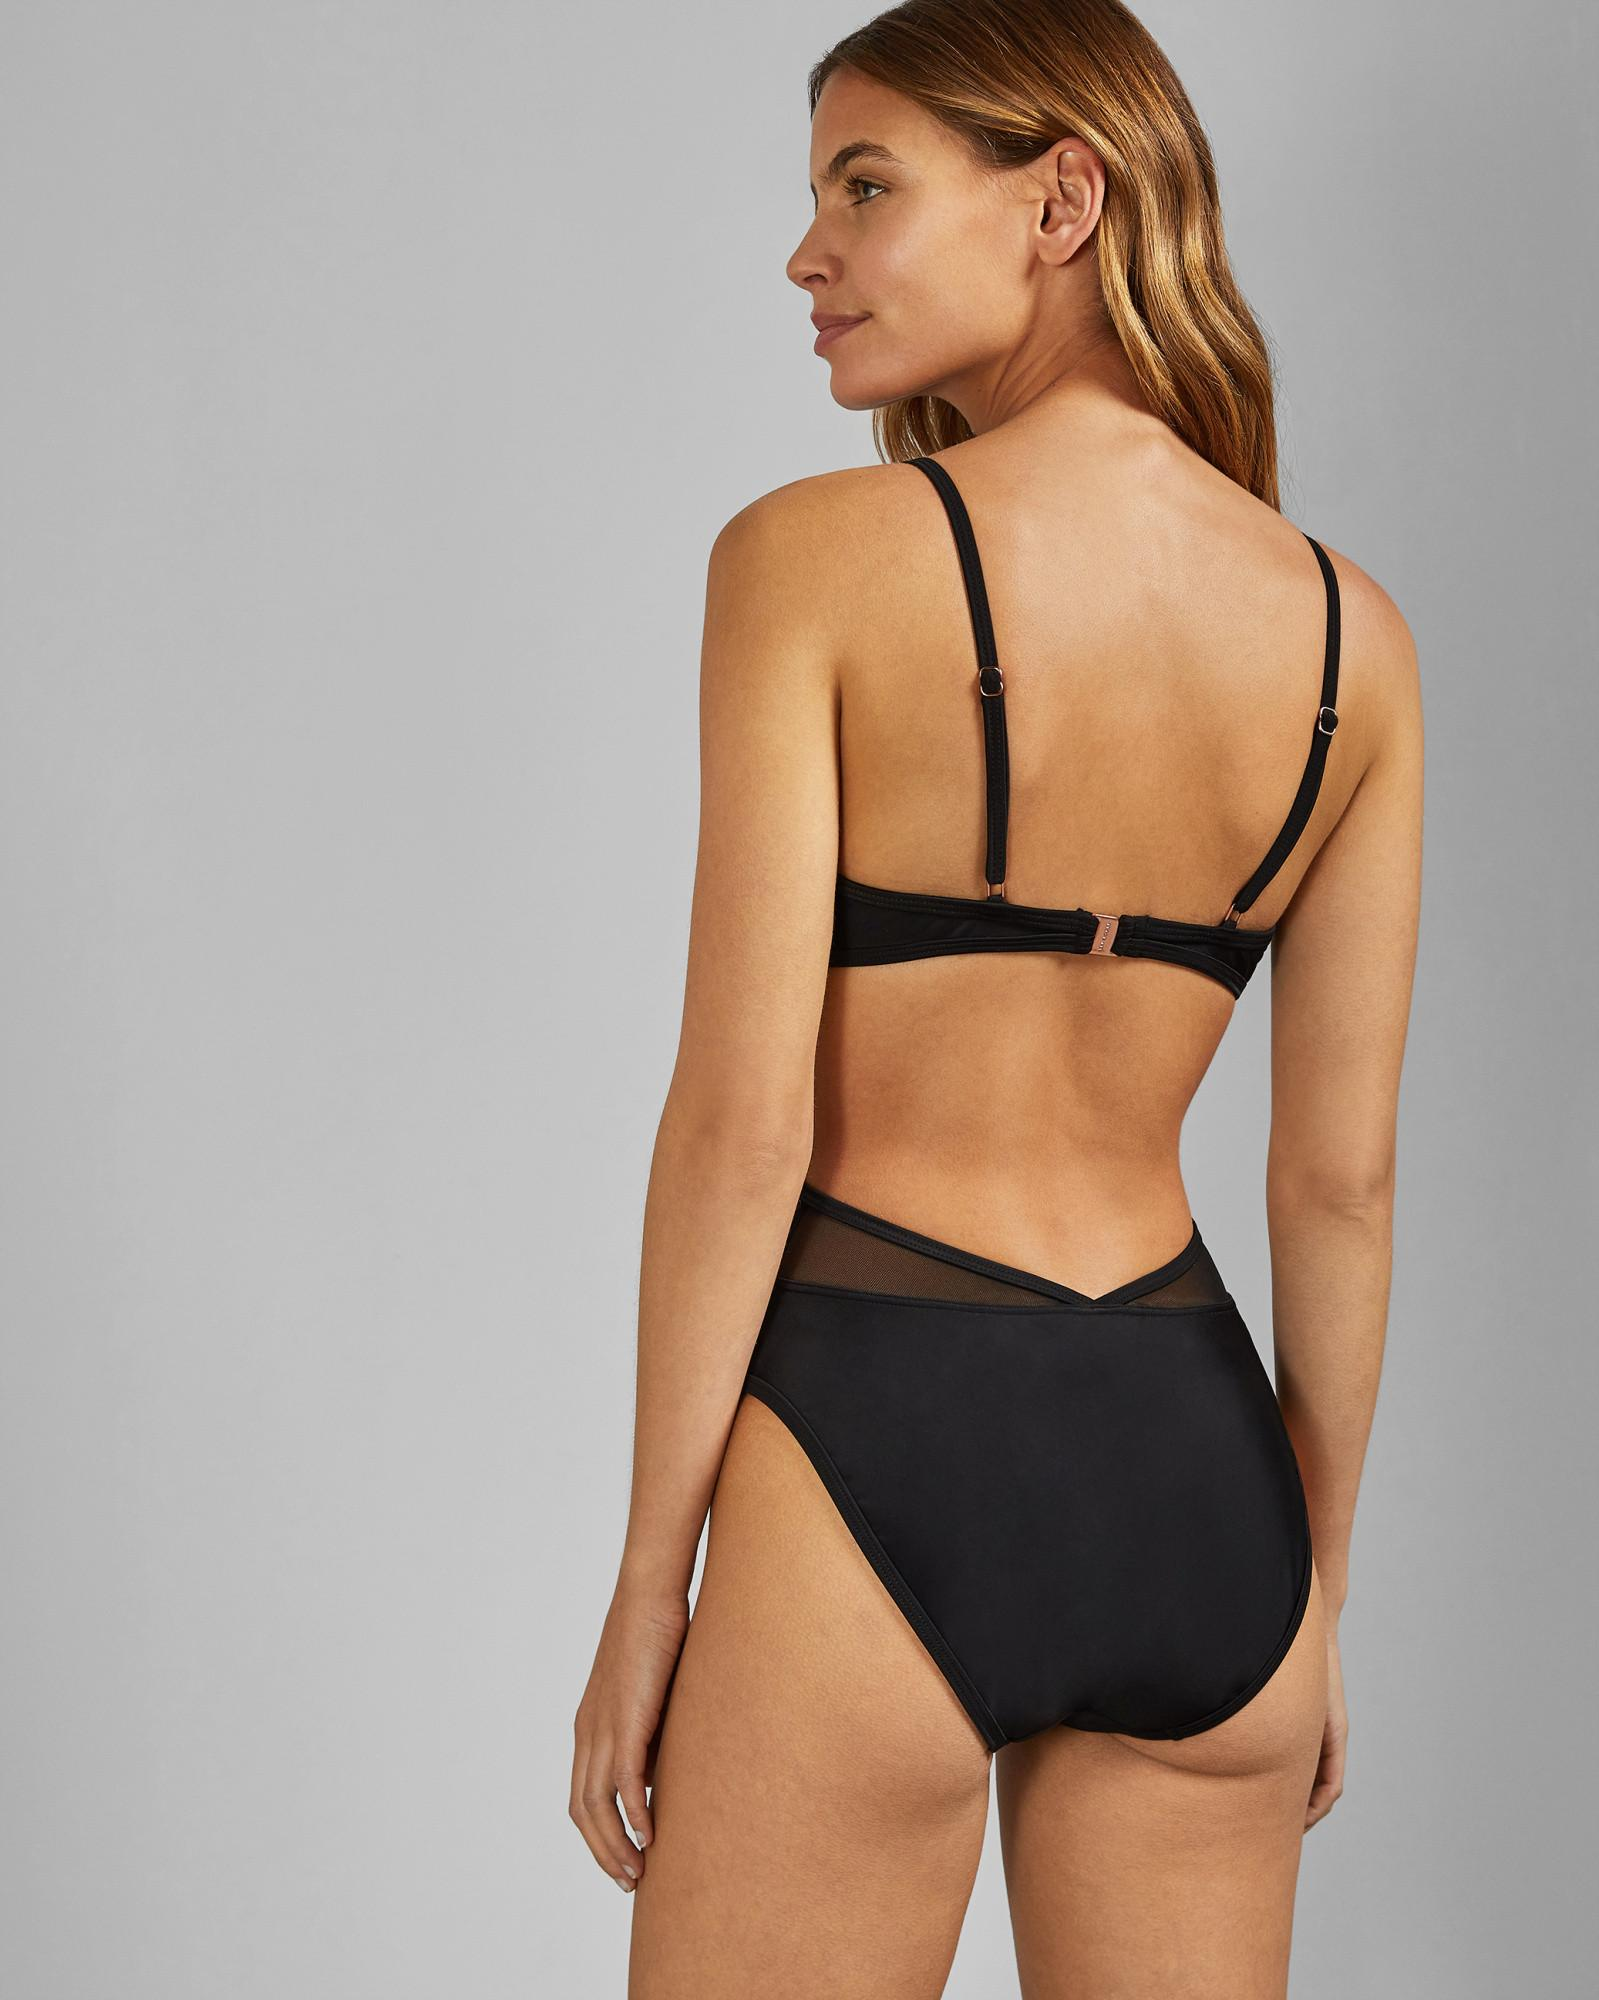 8b50d7cd8bcda Ted Baker Low V Mesh Cut Out Swimsuit in Black - Lyst